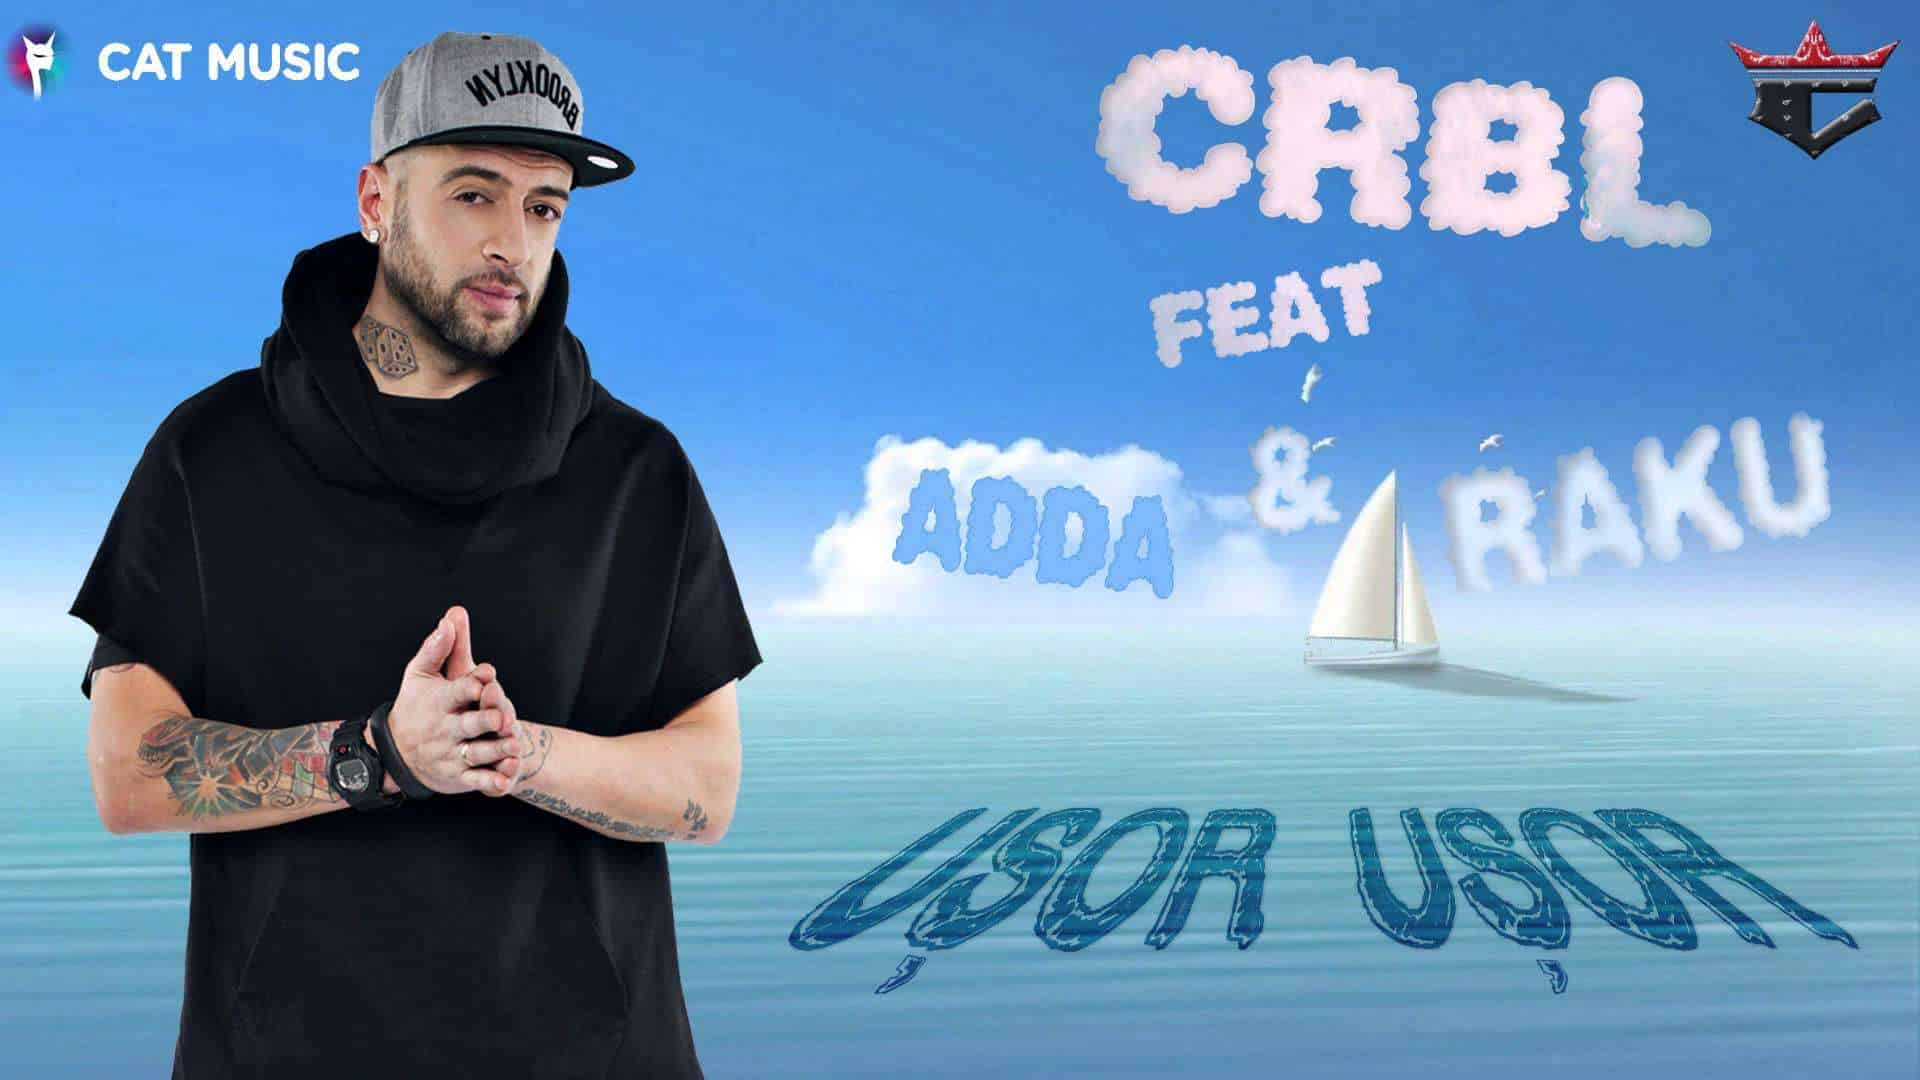 CRBL feat Adda si Raku - Usor, usor (Single)